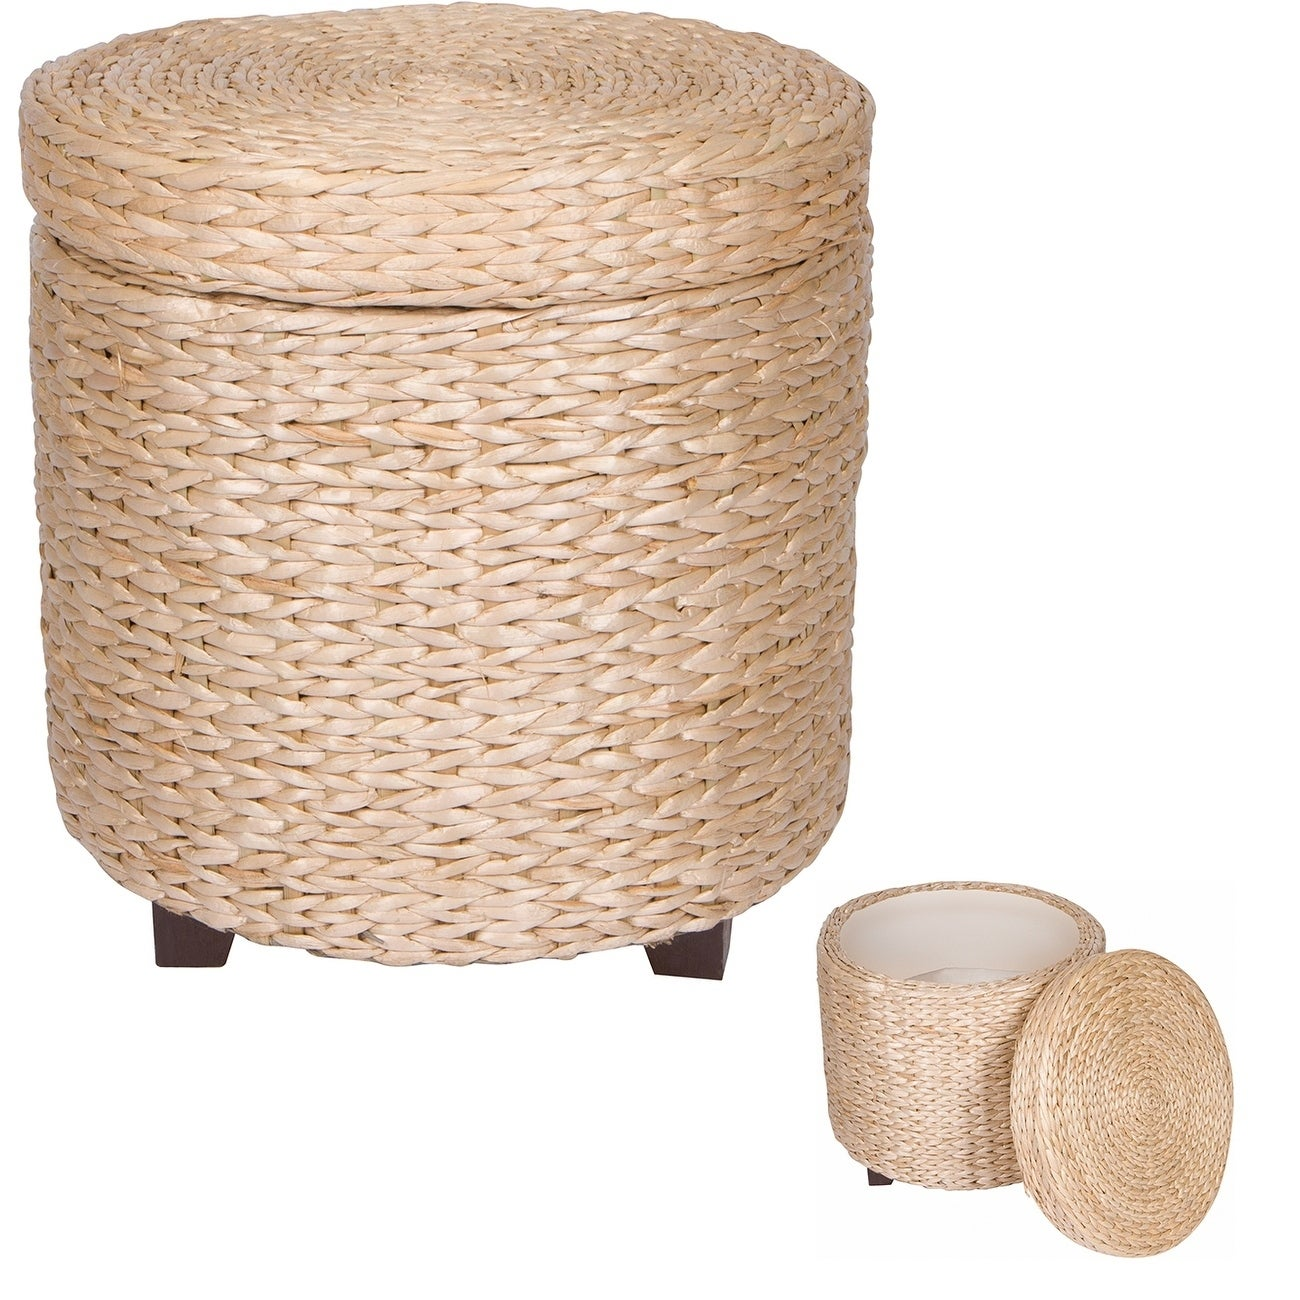 "17"" Round Storage Ottoman Footstool - Wood and Woven Rush..."